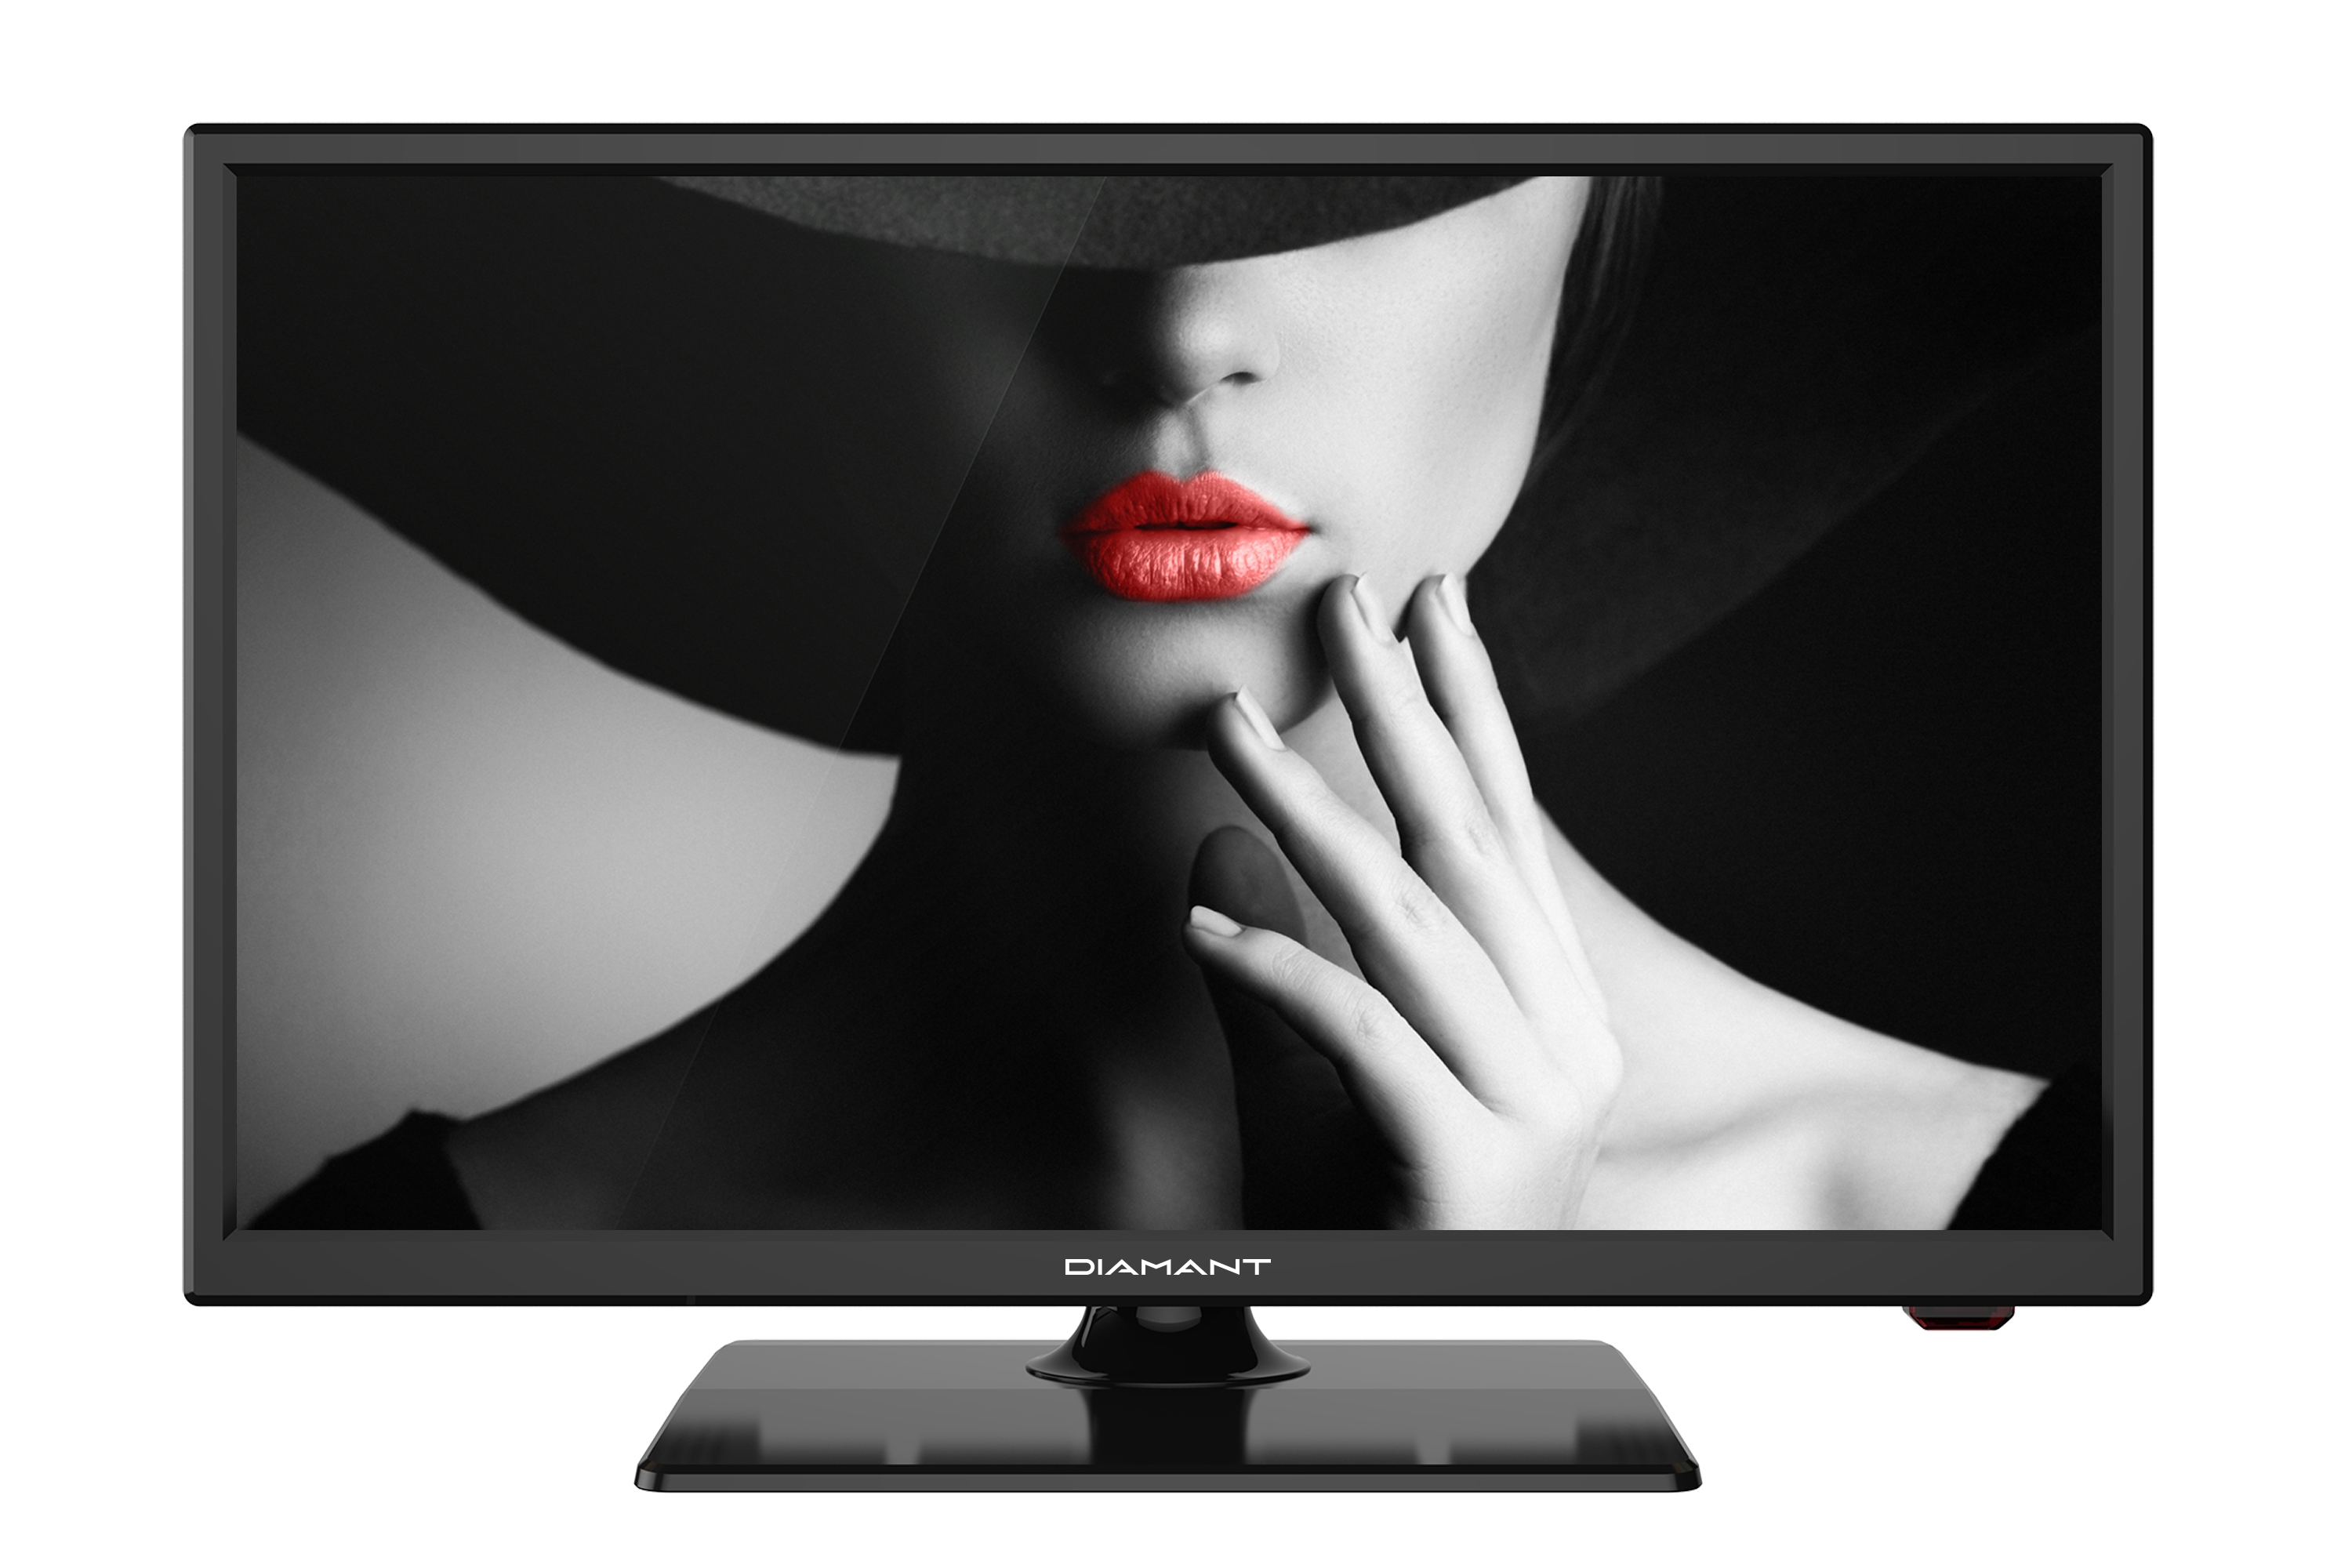 Televizor LED Diamant 22HL4300F, 56cm, Full HD, Negru